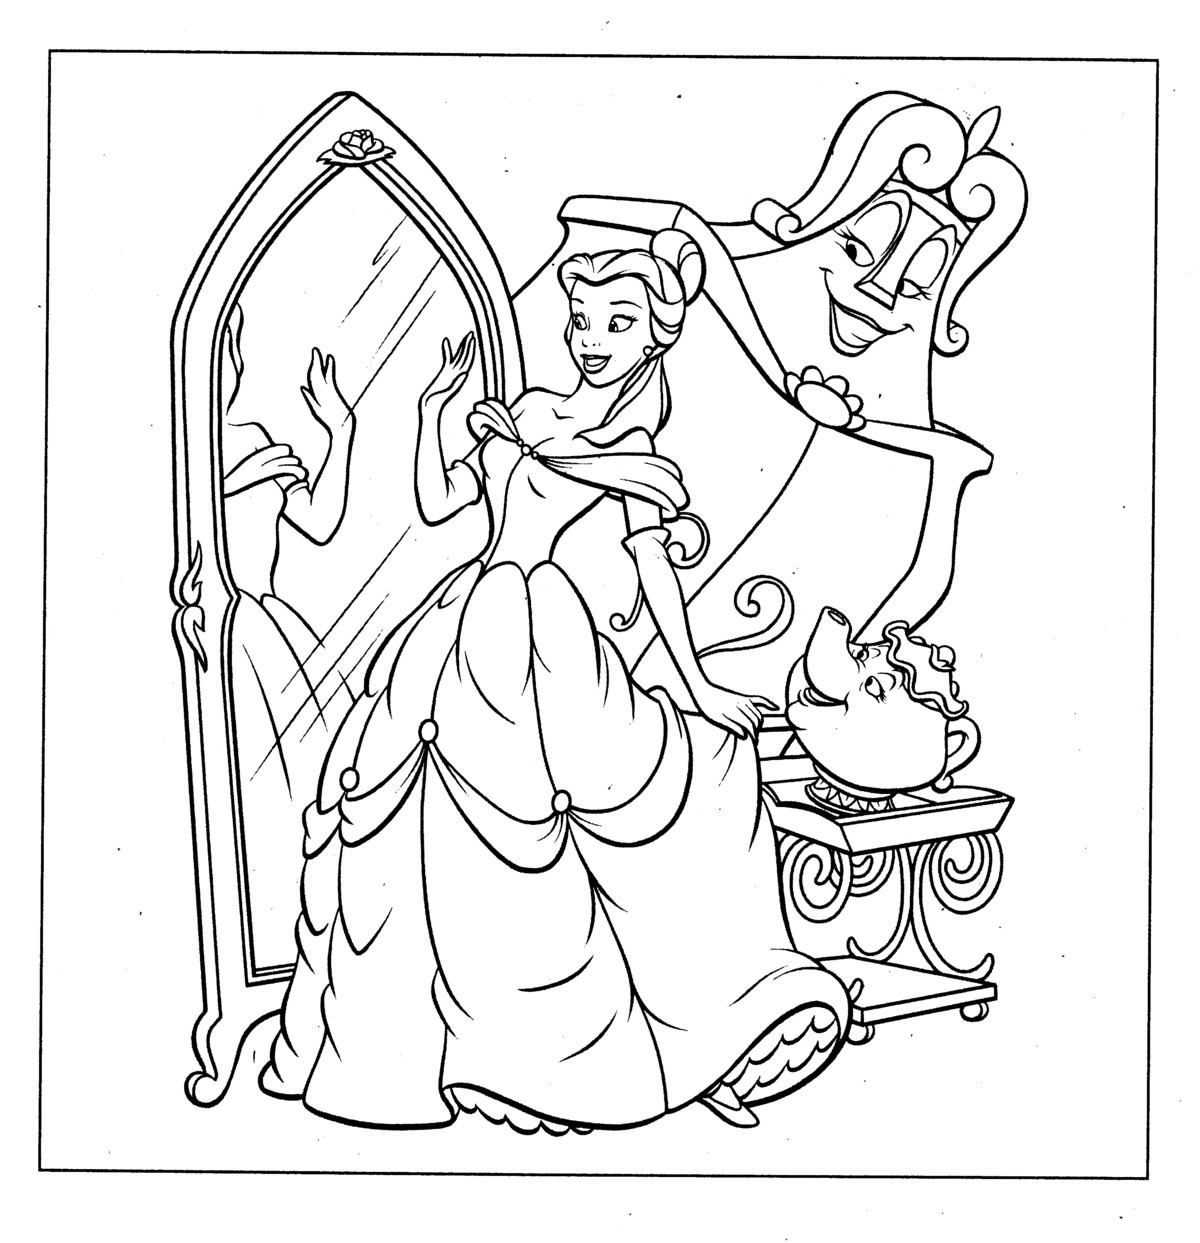 Disney Coloring Books  Free Printable Disney Princess Coloring Pages For Kids